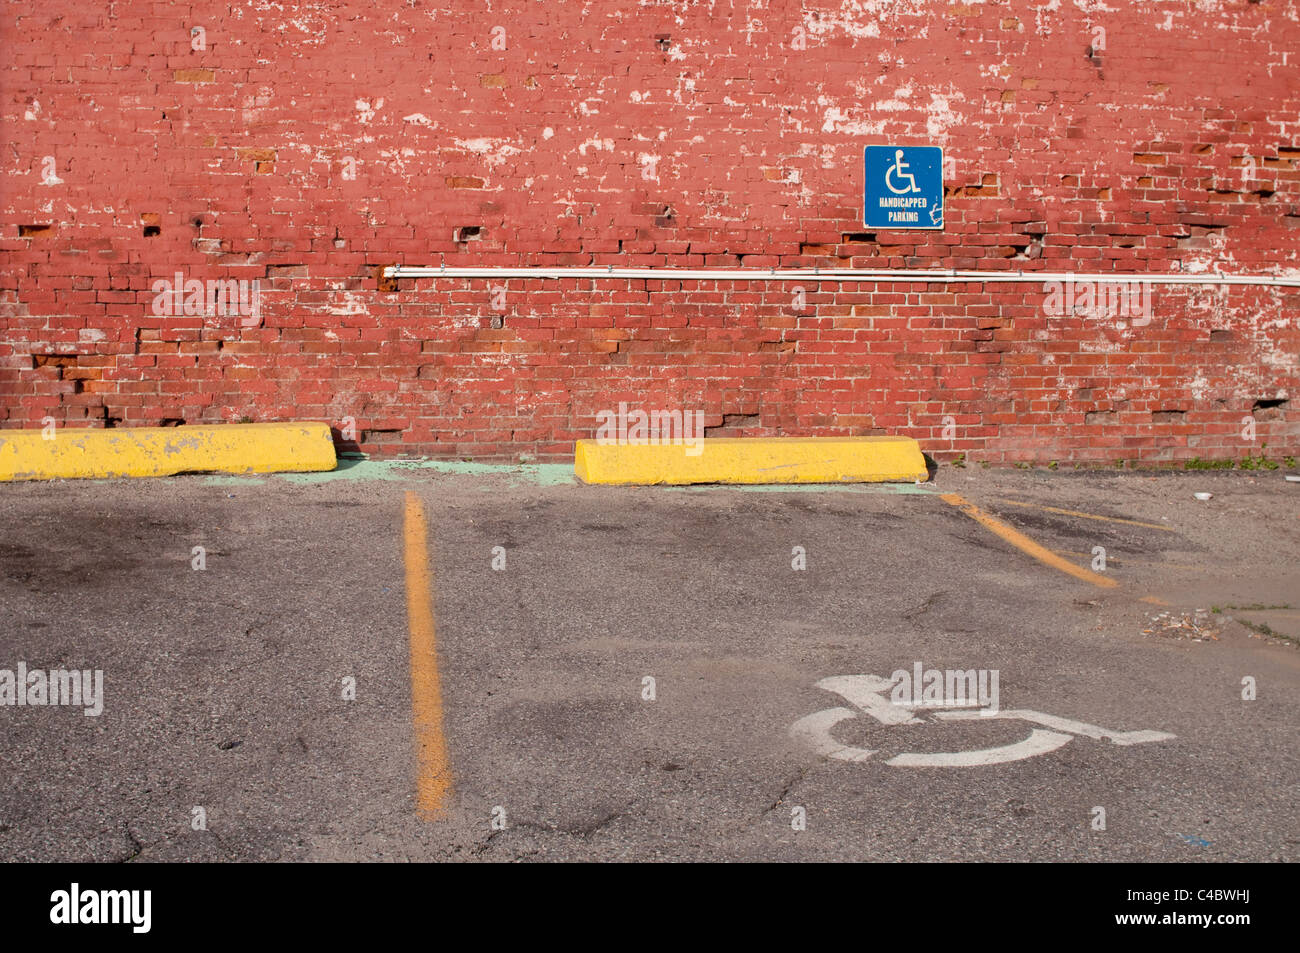 Handicapped/Disabled parking space in the USA against a brick wall in a parking lot. - Stock Image